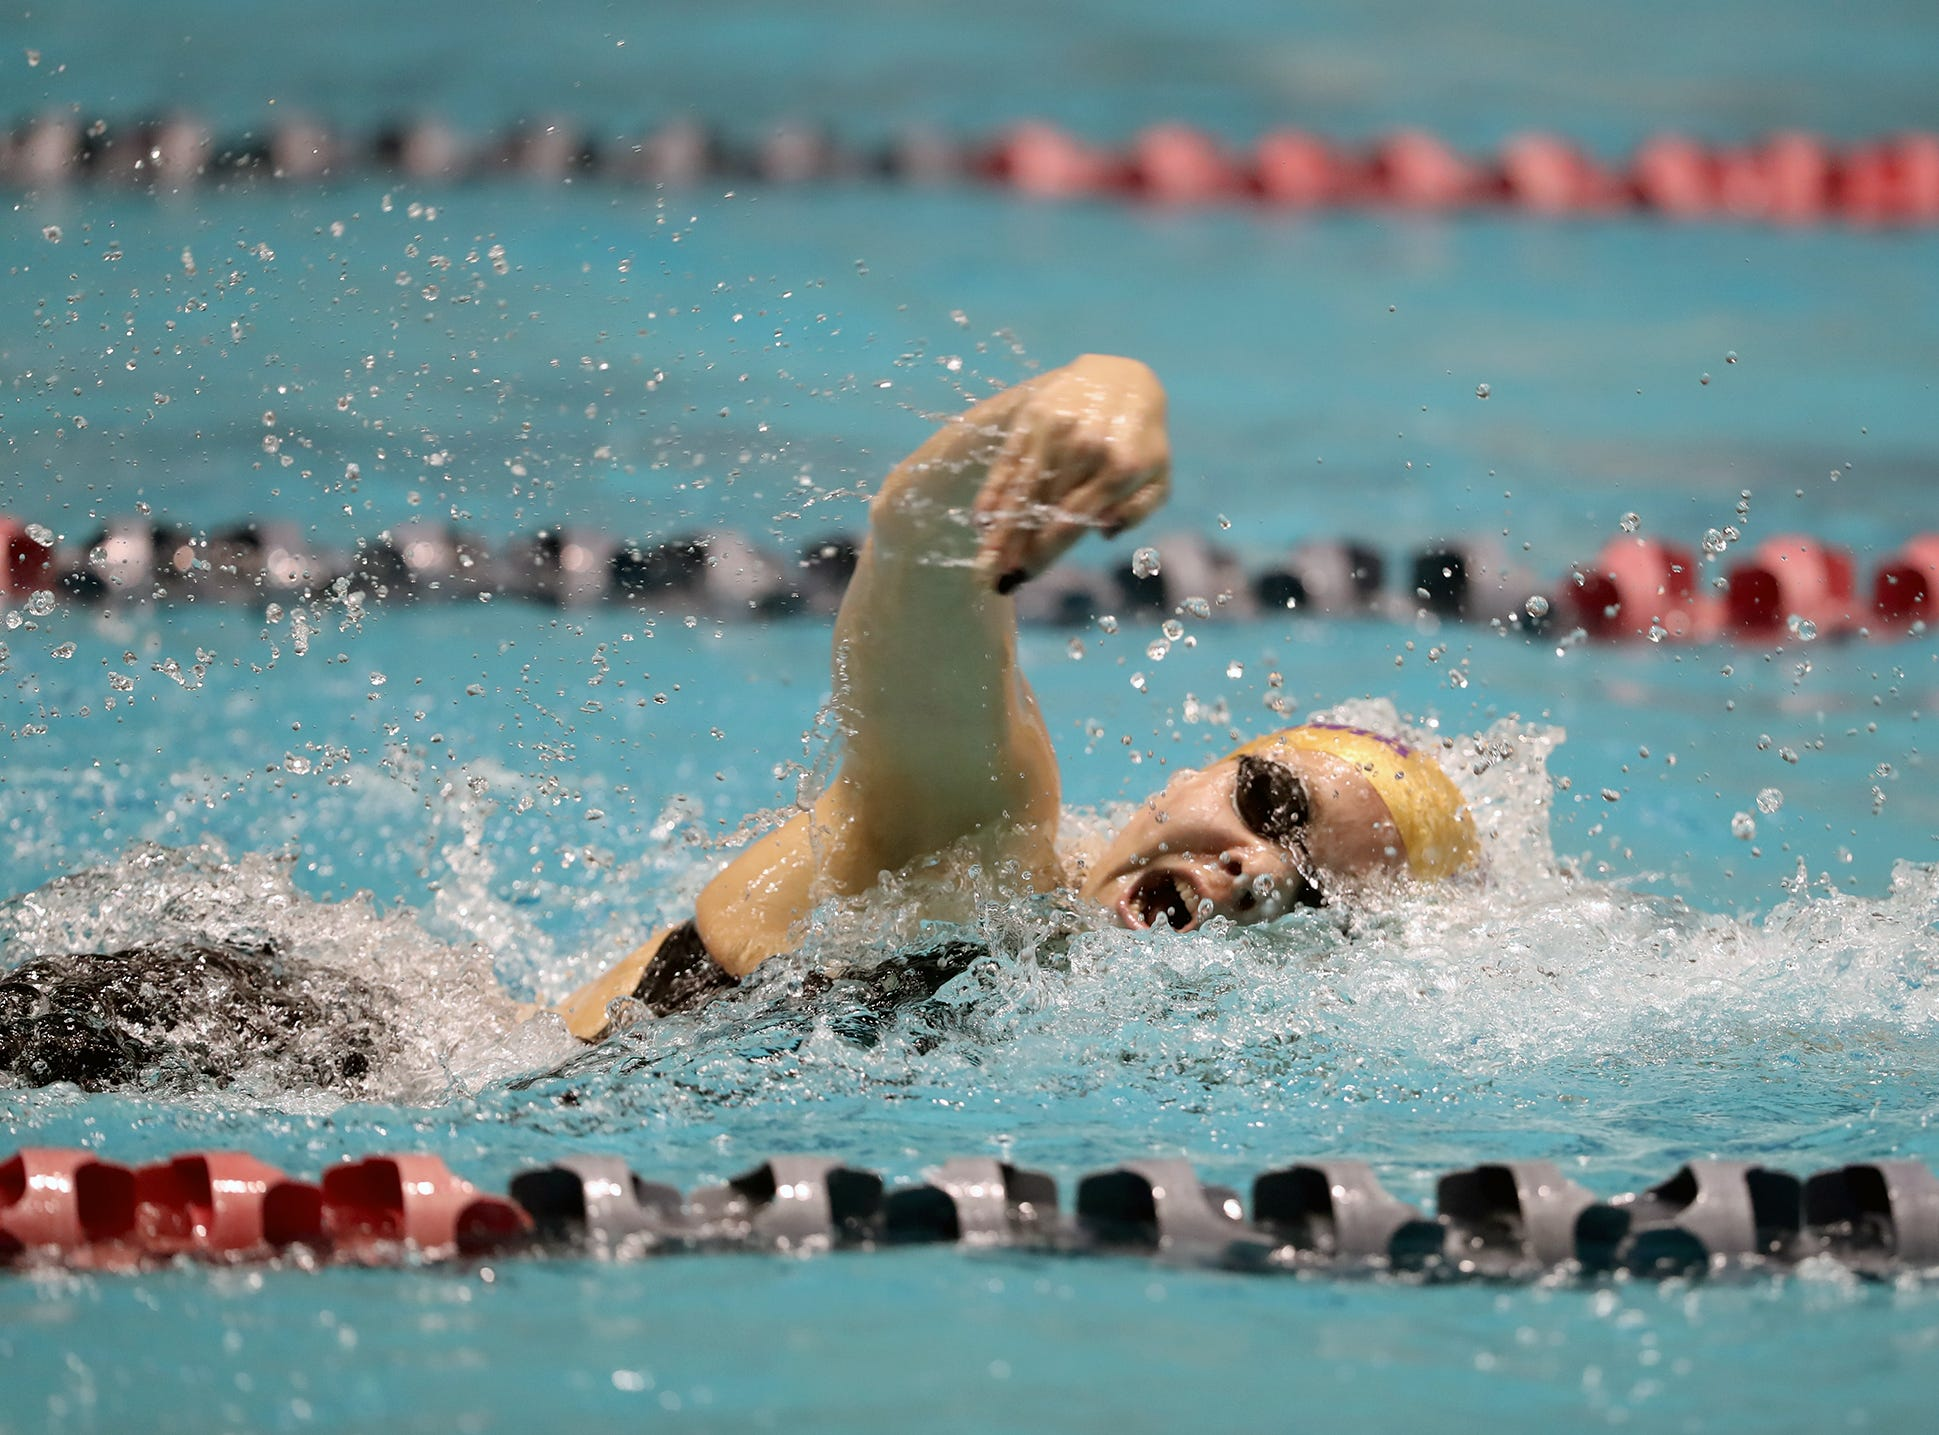 The North Kitsap Girls swim team won the team title at the 2018 2A Girls State Swim & Diving Championships on Saturday, November, 10 , 2018 at the King County Aquatics Center, in Federal Way. North Kitsap swimmer Eleanor Beers sets a meet record in the 100 yard freestyle.